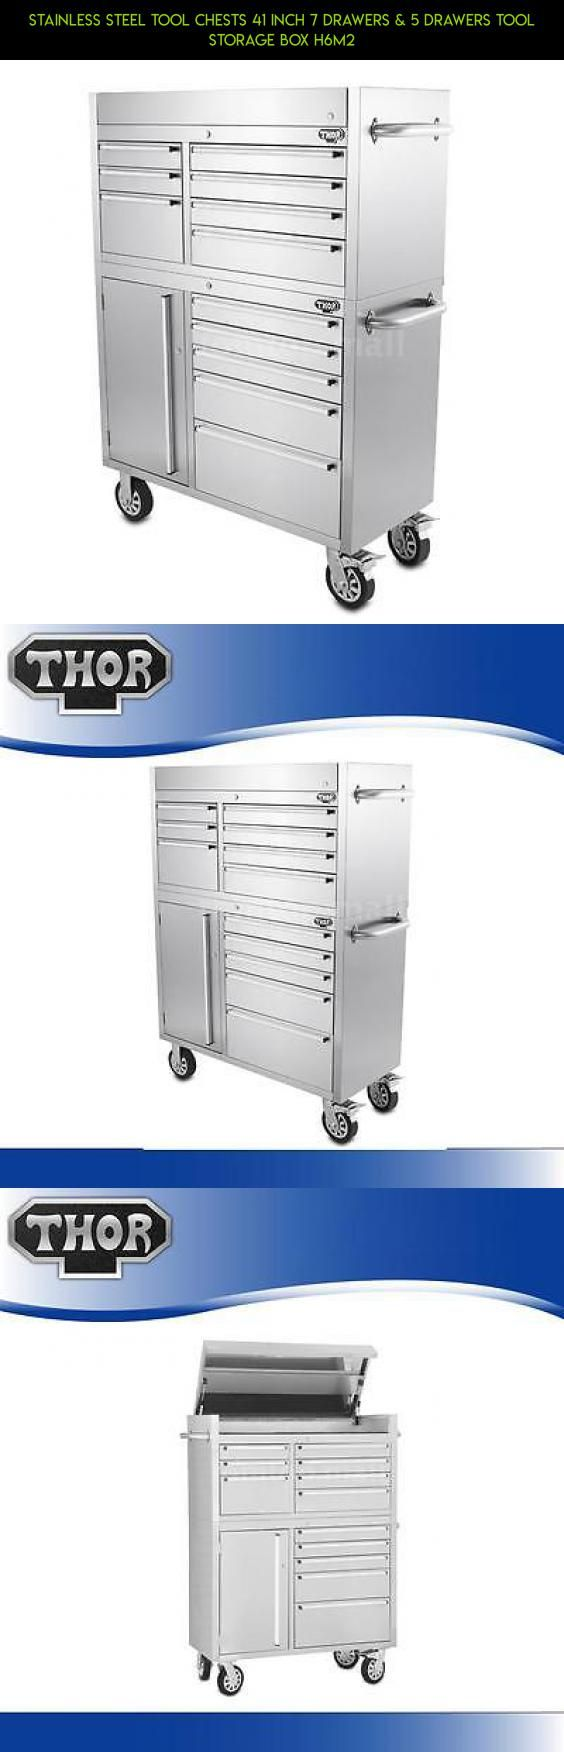 Stainless Steel Tool Chests 41 Inch 7 Drawers & 5 Drawers Tool Storage Box H6M2 #drone #storage #technology #racing #plans #kit #tech #drawers #shopping #gadgets #parts #products #camera #7 #fpv